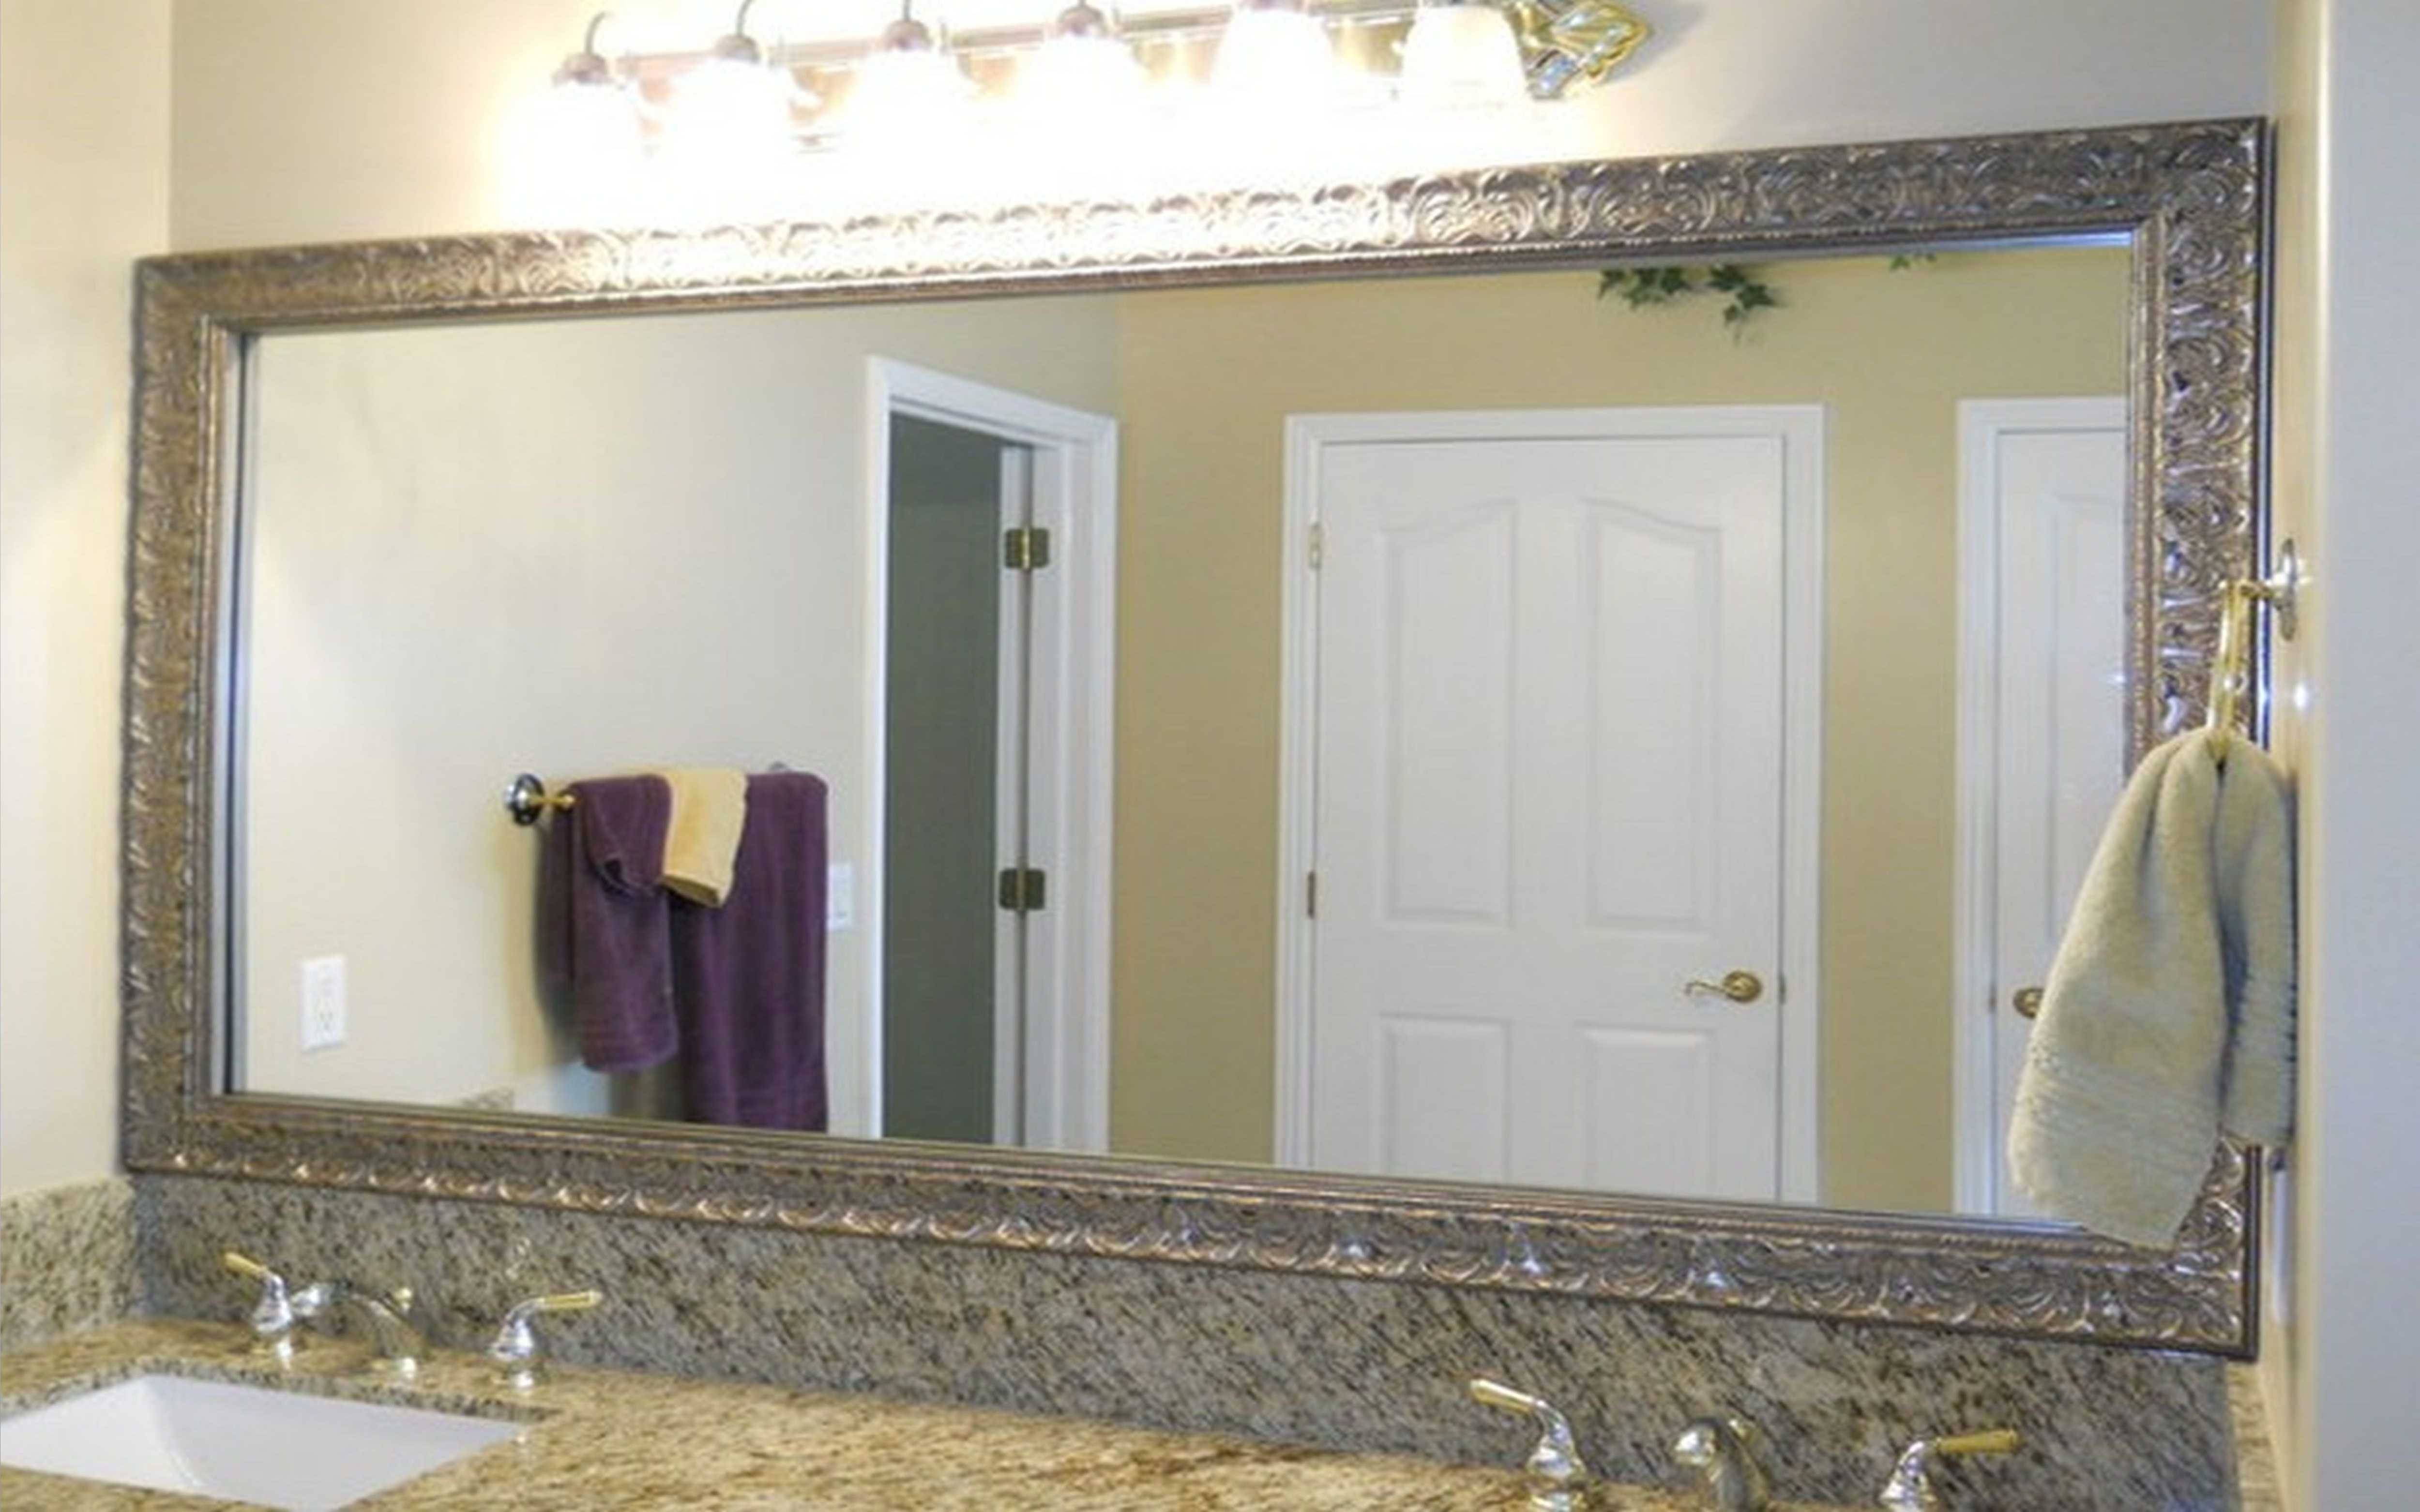 Large Frameless Bathroom Mirror 2017 Including Elegant Decor With Inside Antique Frameless Mirrors (View 20 of 25)